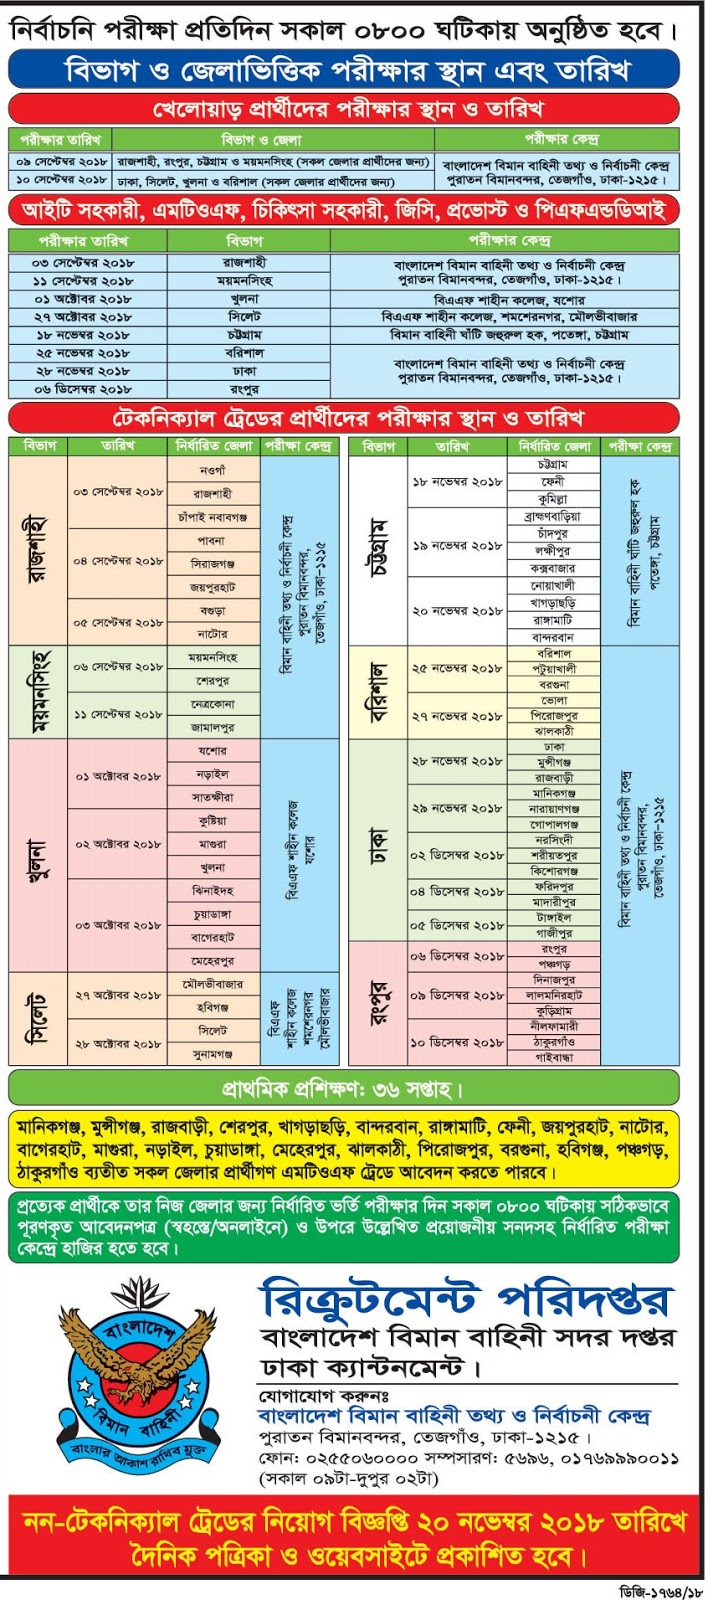 Bangladesh Air Force Airman Recruitment Exam Center, Date and Time